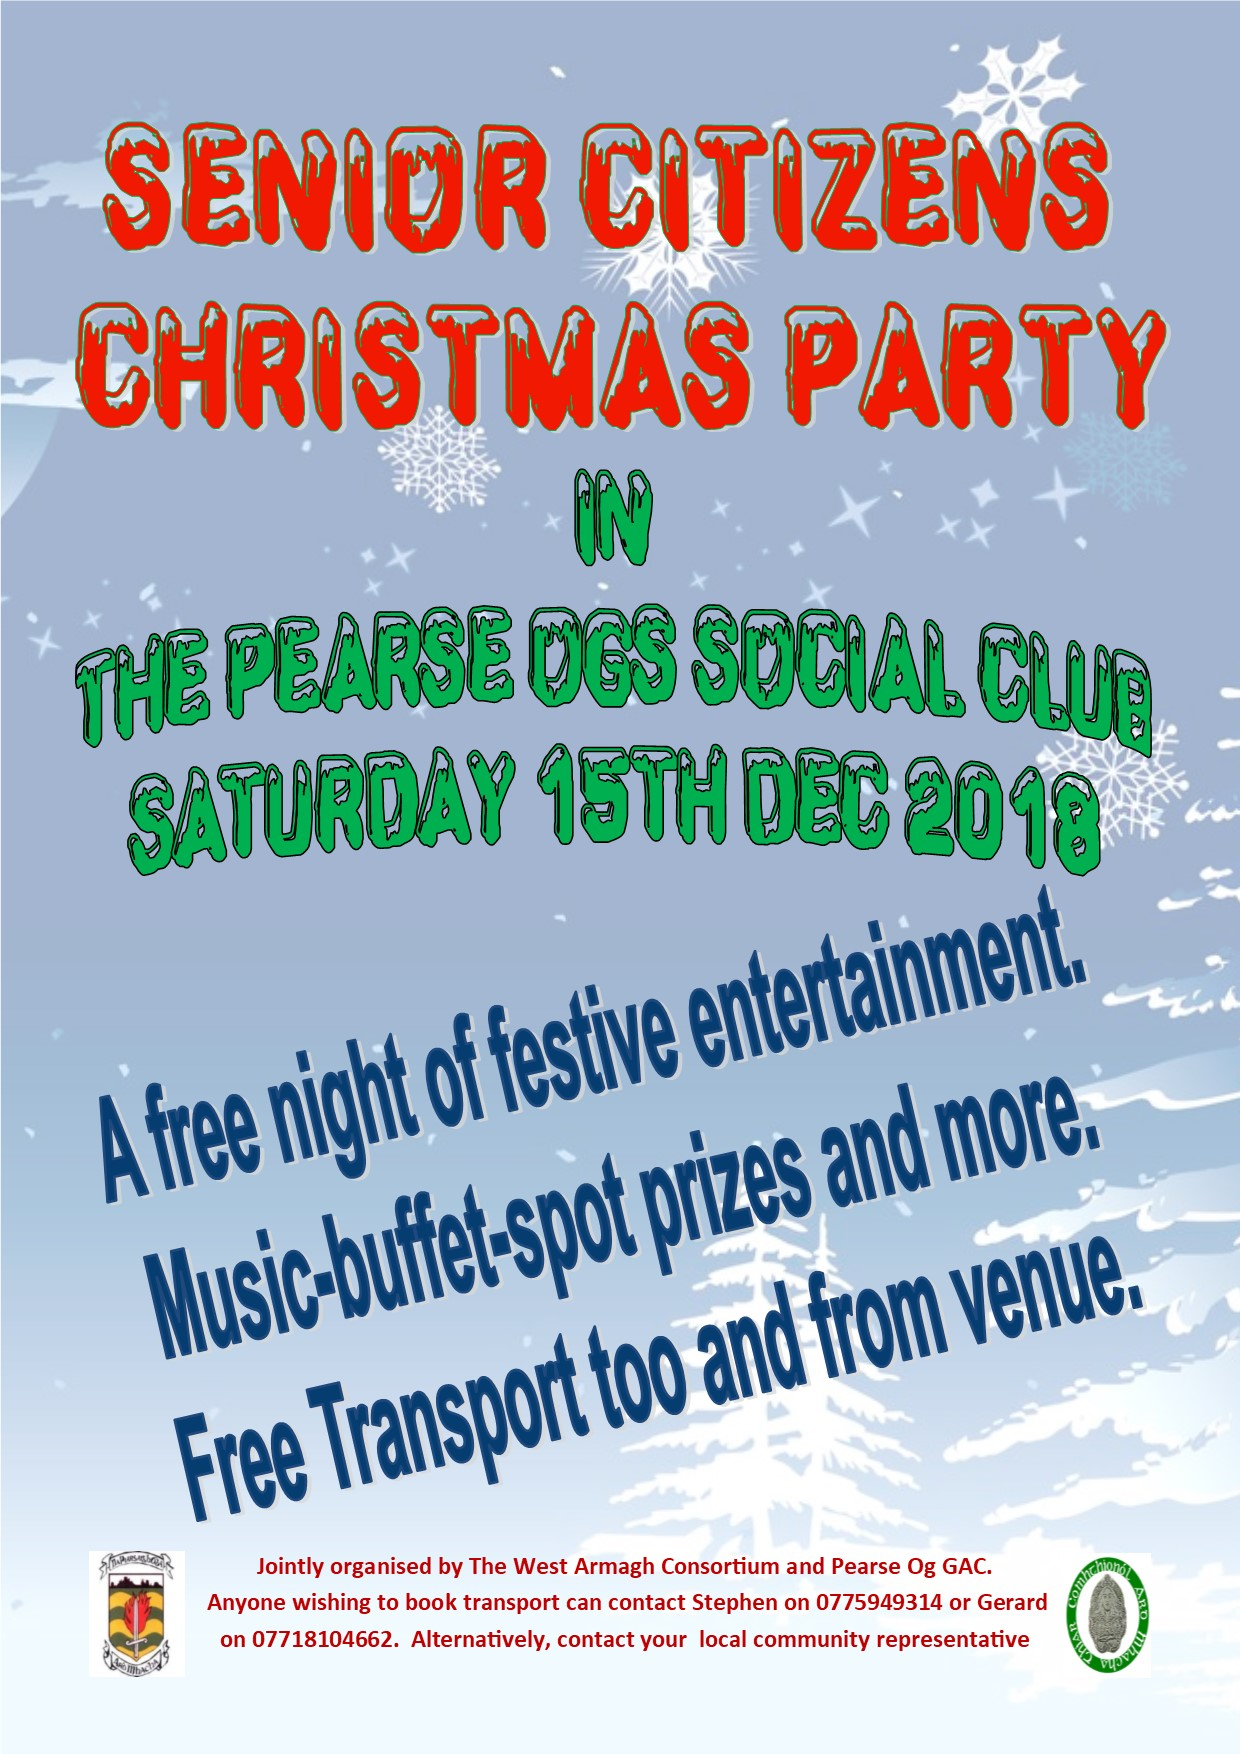 Senior Citizens Christmas Party in Pearse Ogs.Jointly organised by Pearse Ogs and West Armagh Consortium